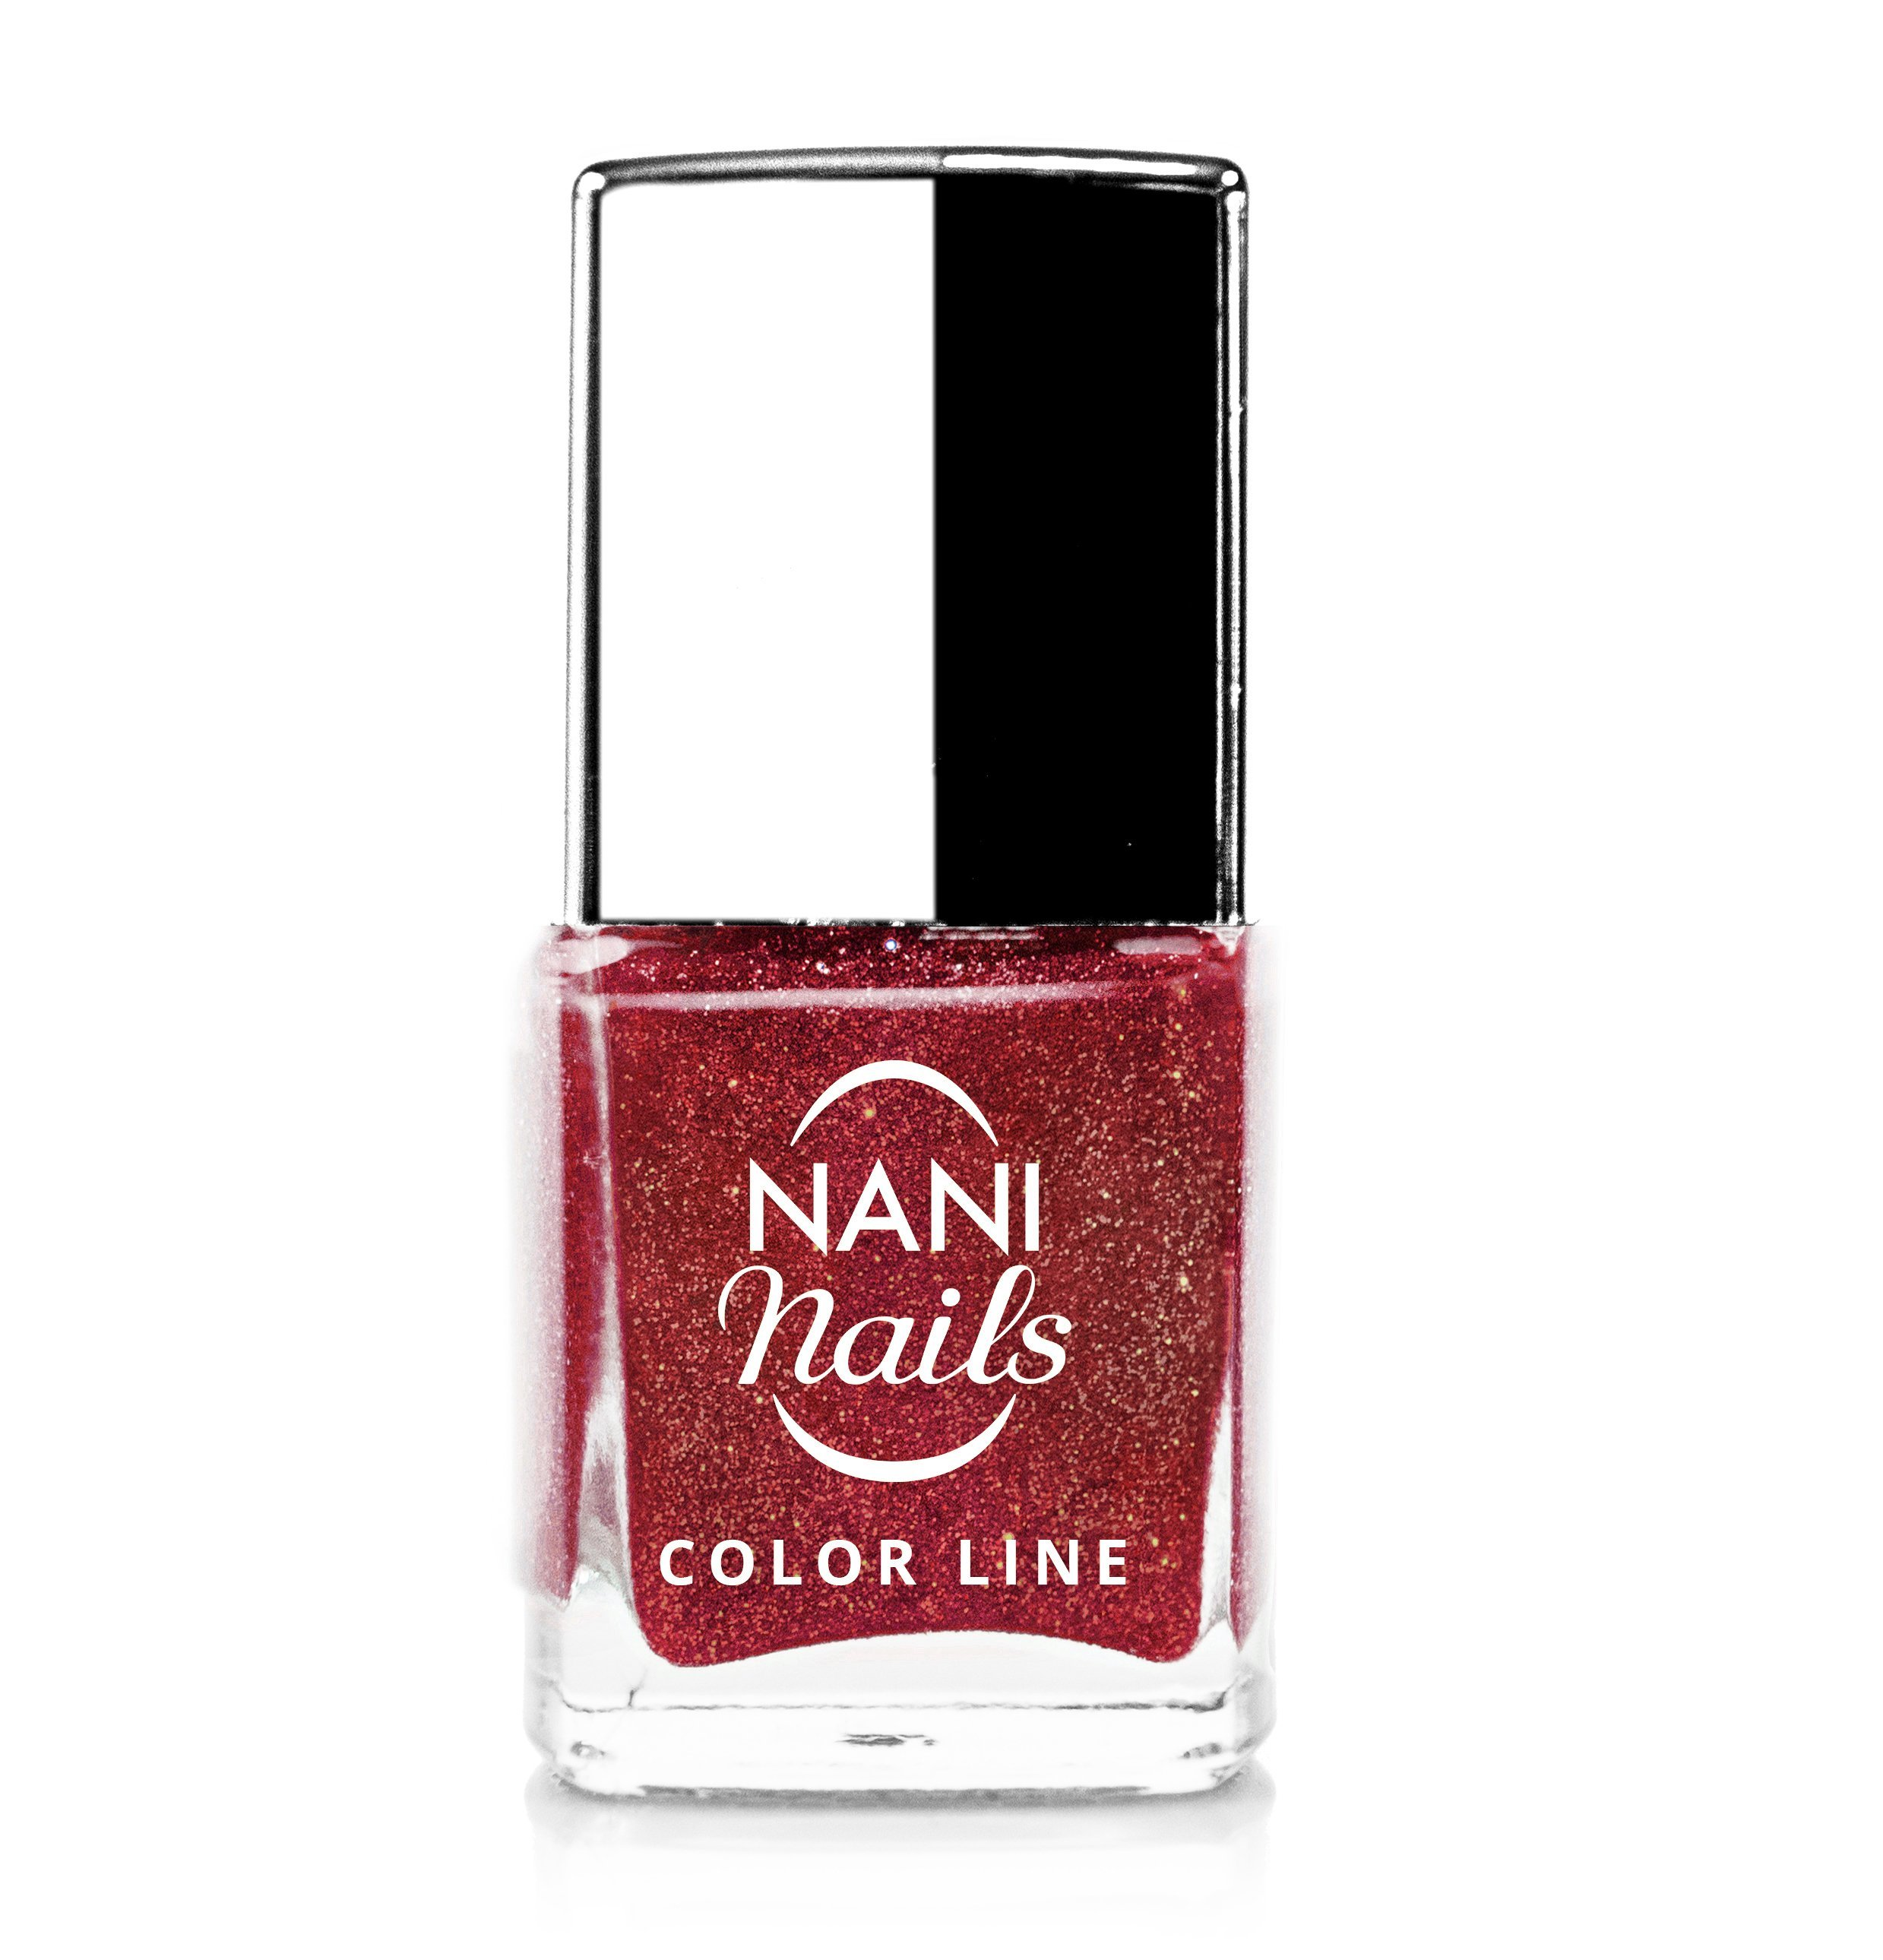 NANI lak Color Line 9 ml - 83